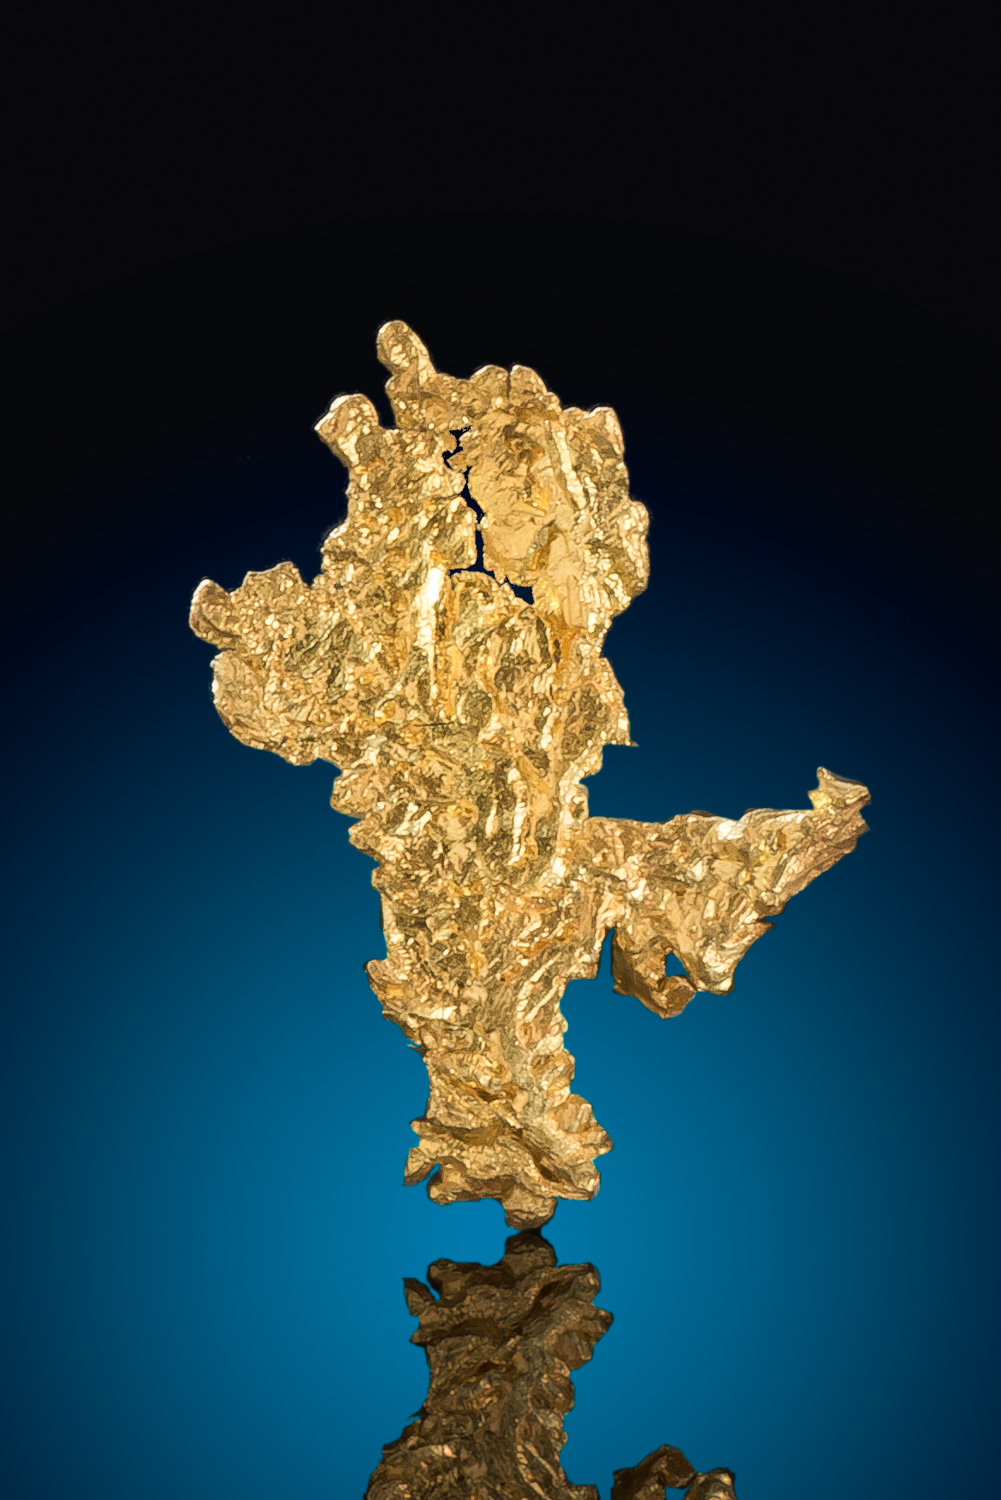 Sharp From - Crystalline Gold Nugget from the Eagles Nest Mine